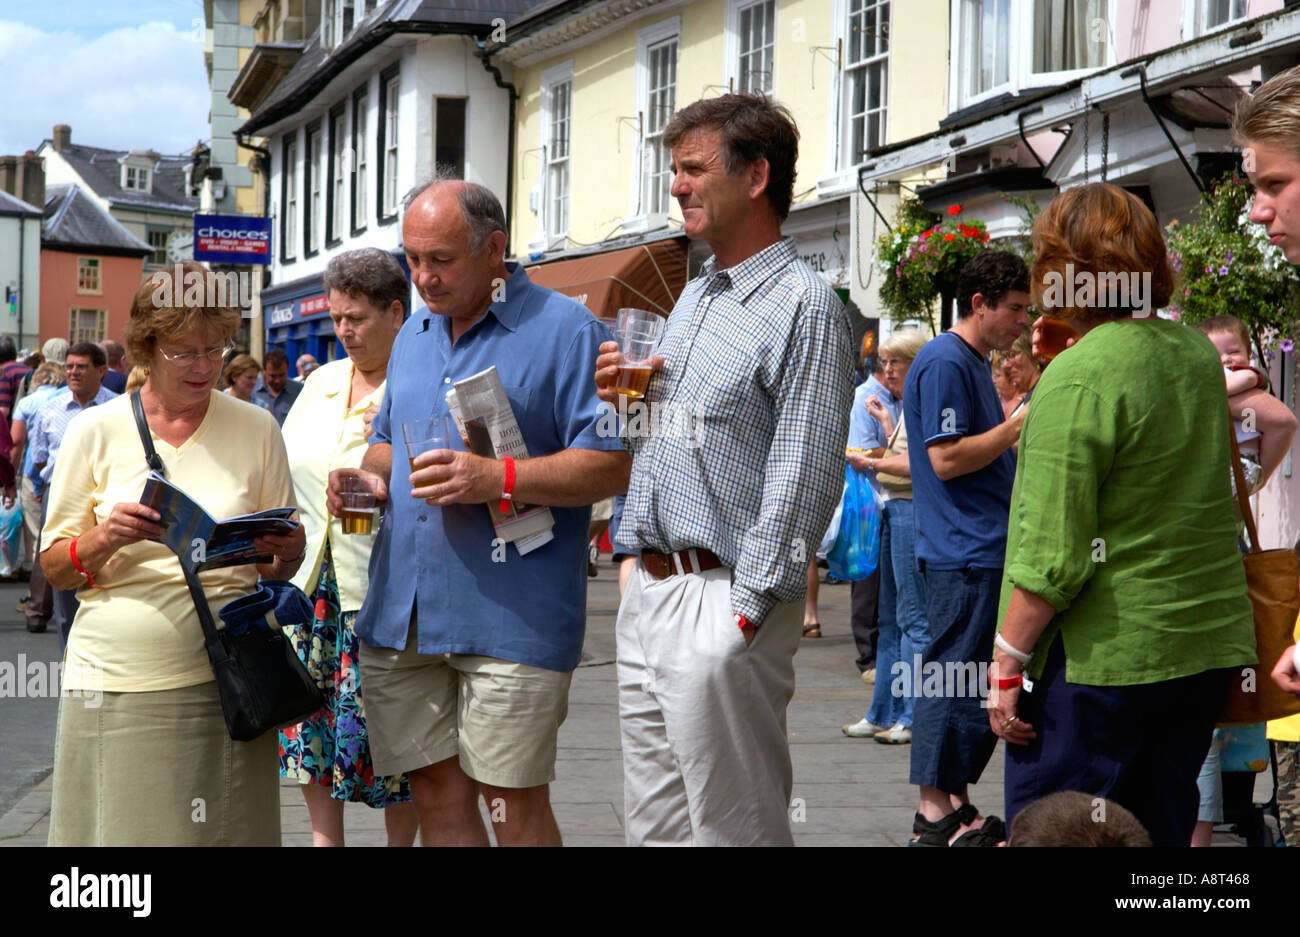 Fans standing on the street in sunshine drinking beer and reading programme during the jazz festival in Brecon Powys Wales UK - Stock Image